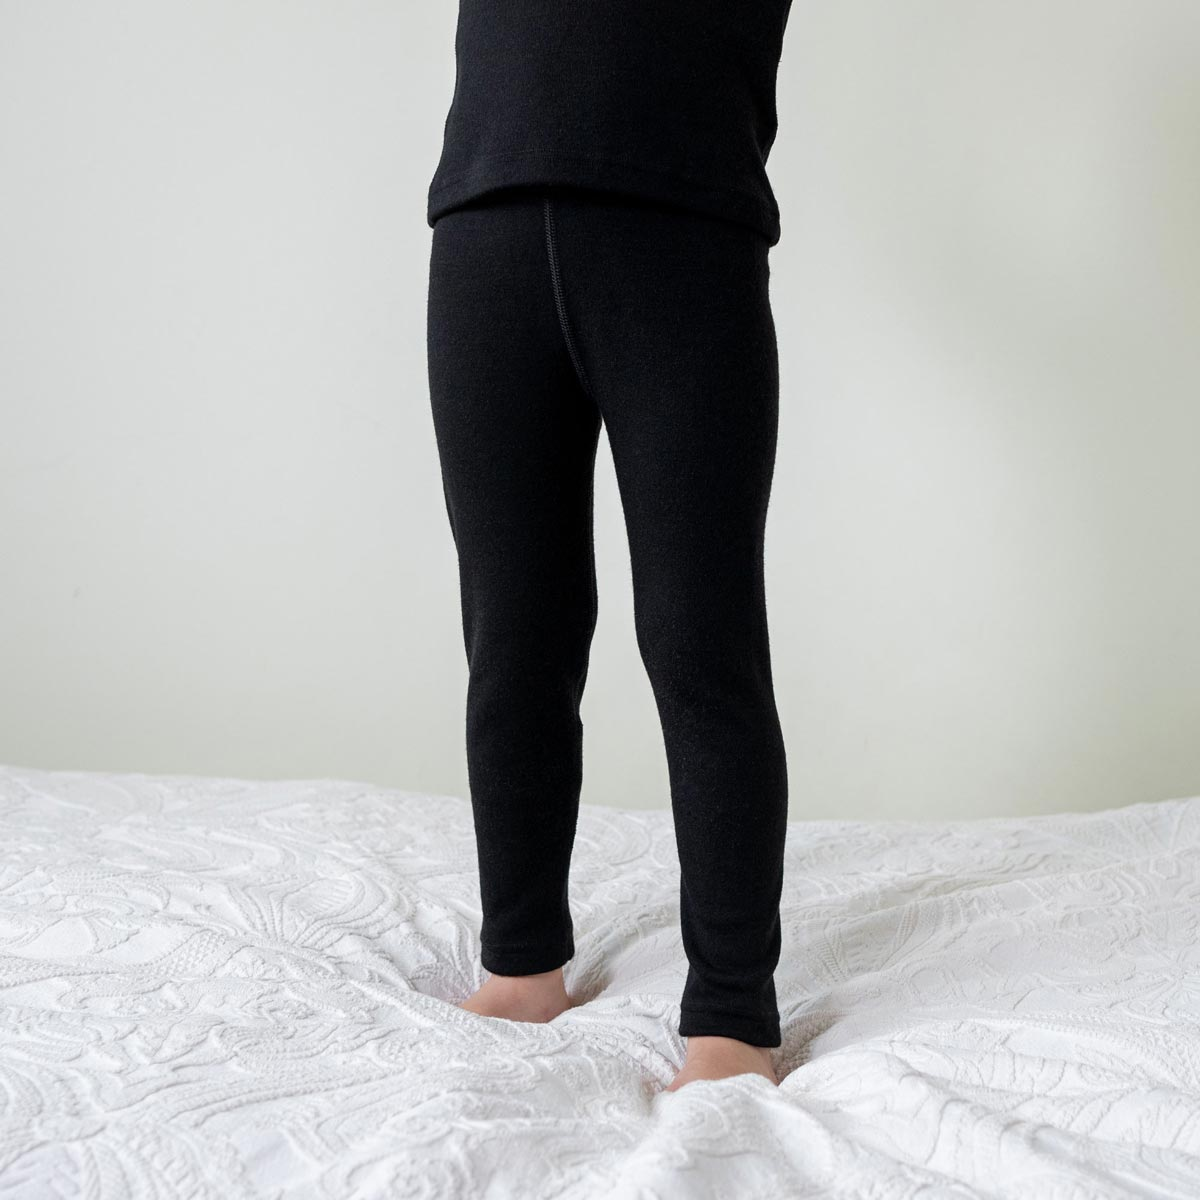 Kids' Pants 250gsm Merino Wool Black